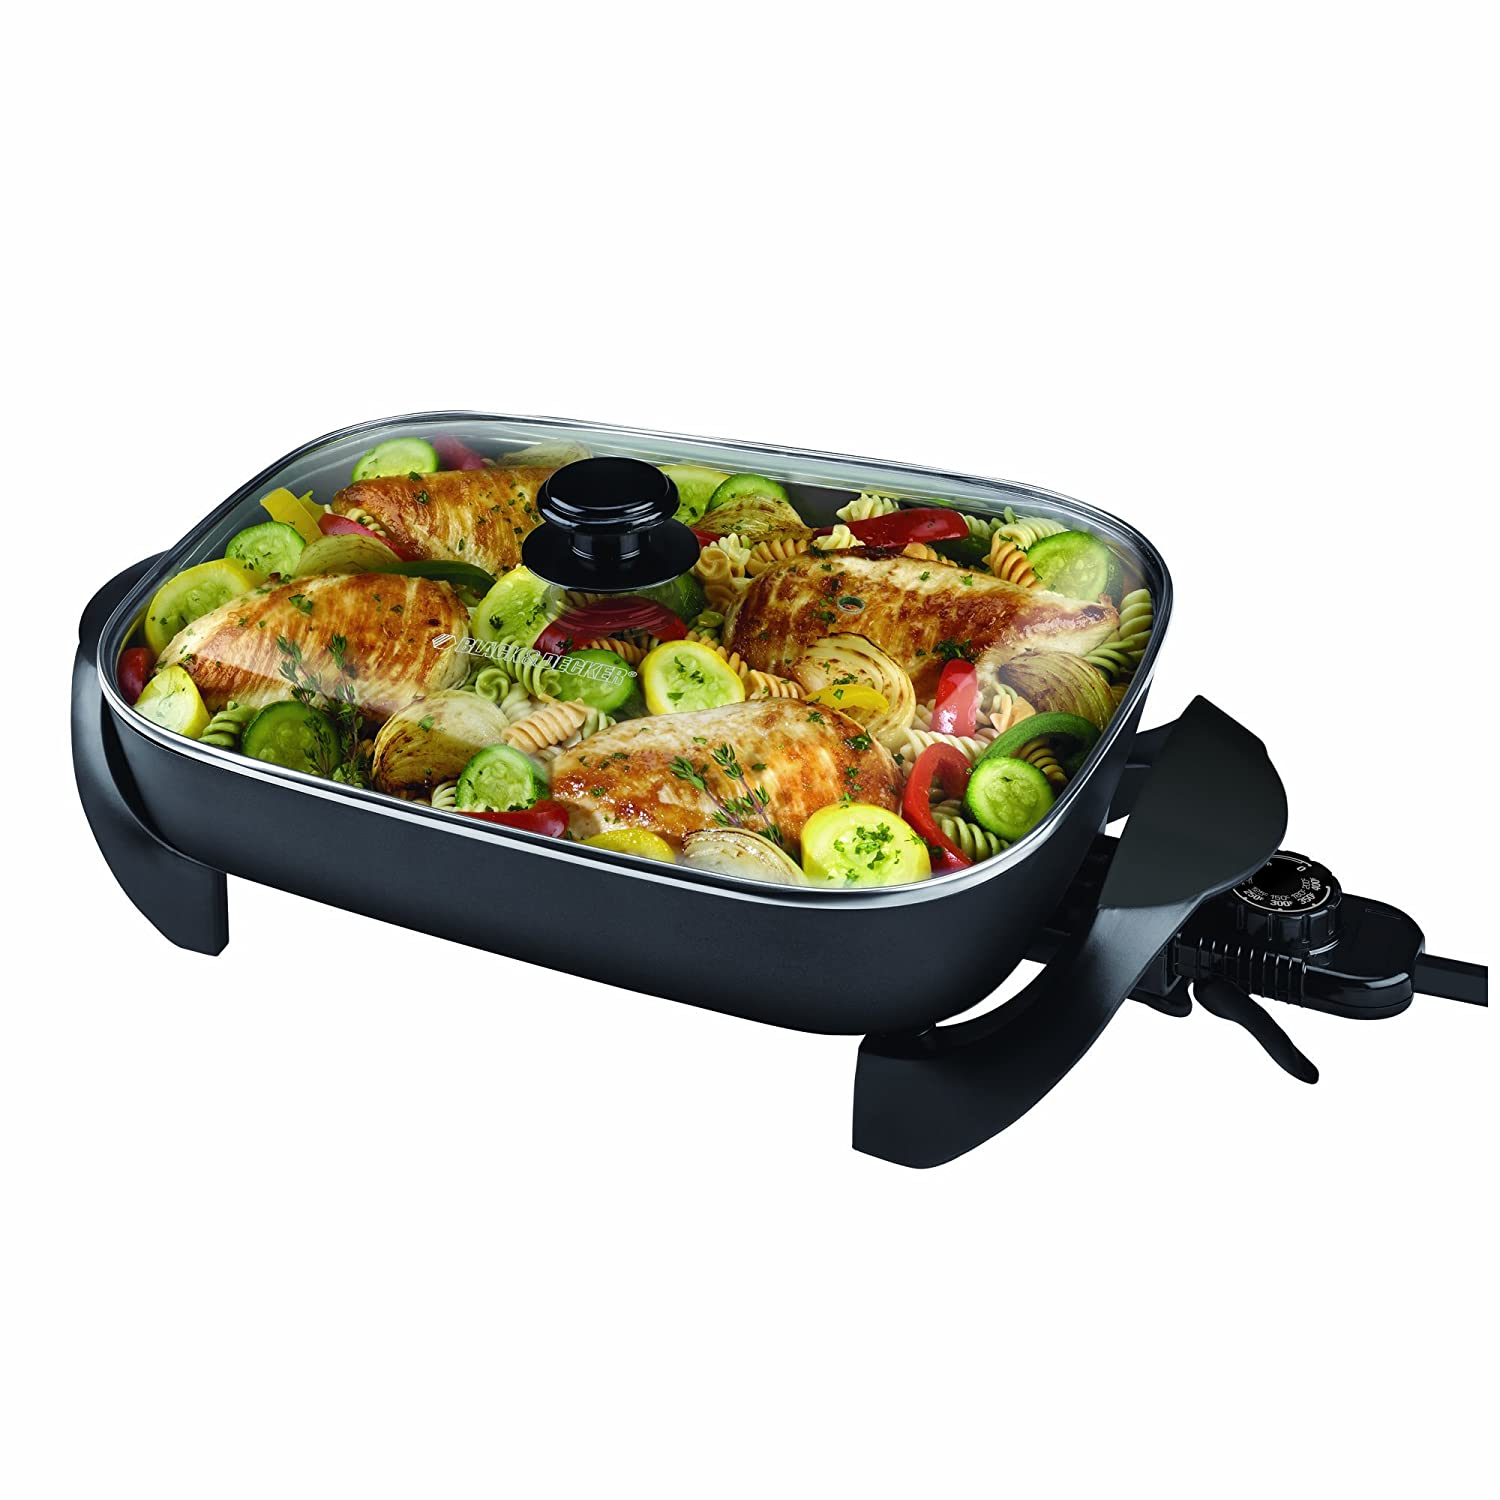 "BLACK+DECKER 12""x 15"" Electric Skillet"